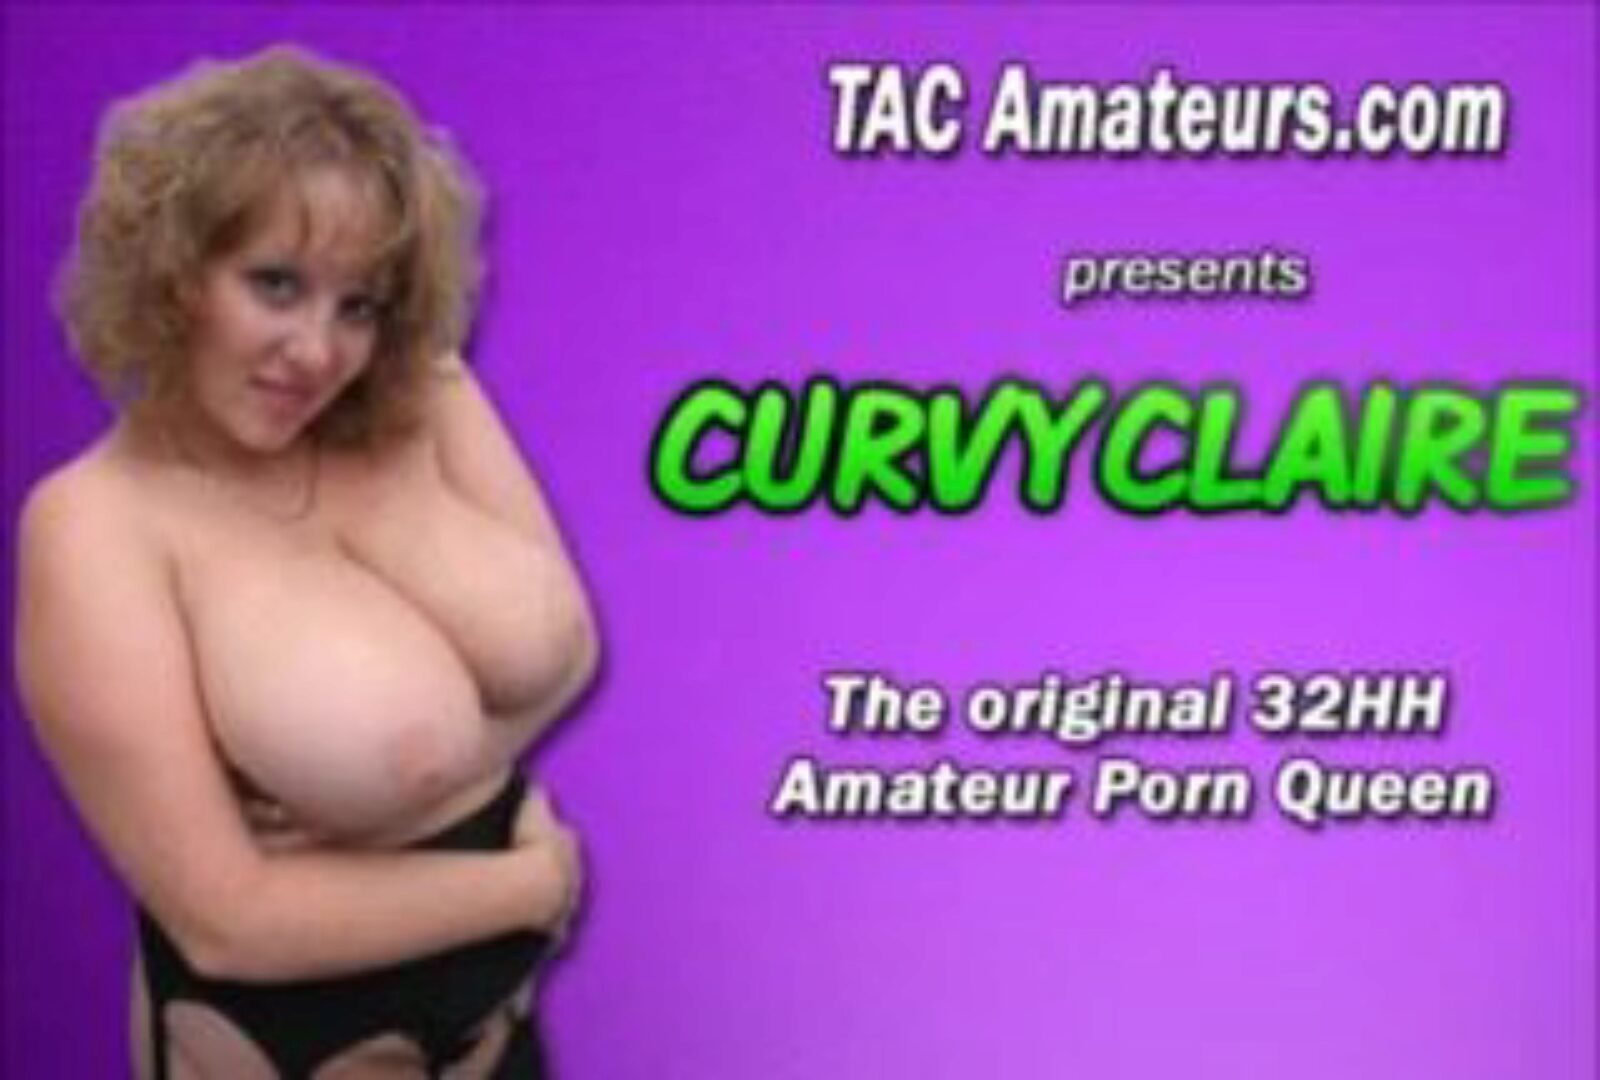 32hh Housewife Curvyclaire Fucked and Facial: Free Porn 6d Watch 32hh Housewife Curvyclaire Fucked and Facial movie scene on xHamster - the ultimate selection of free-for-all British Mature xxx porno tube clips